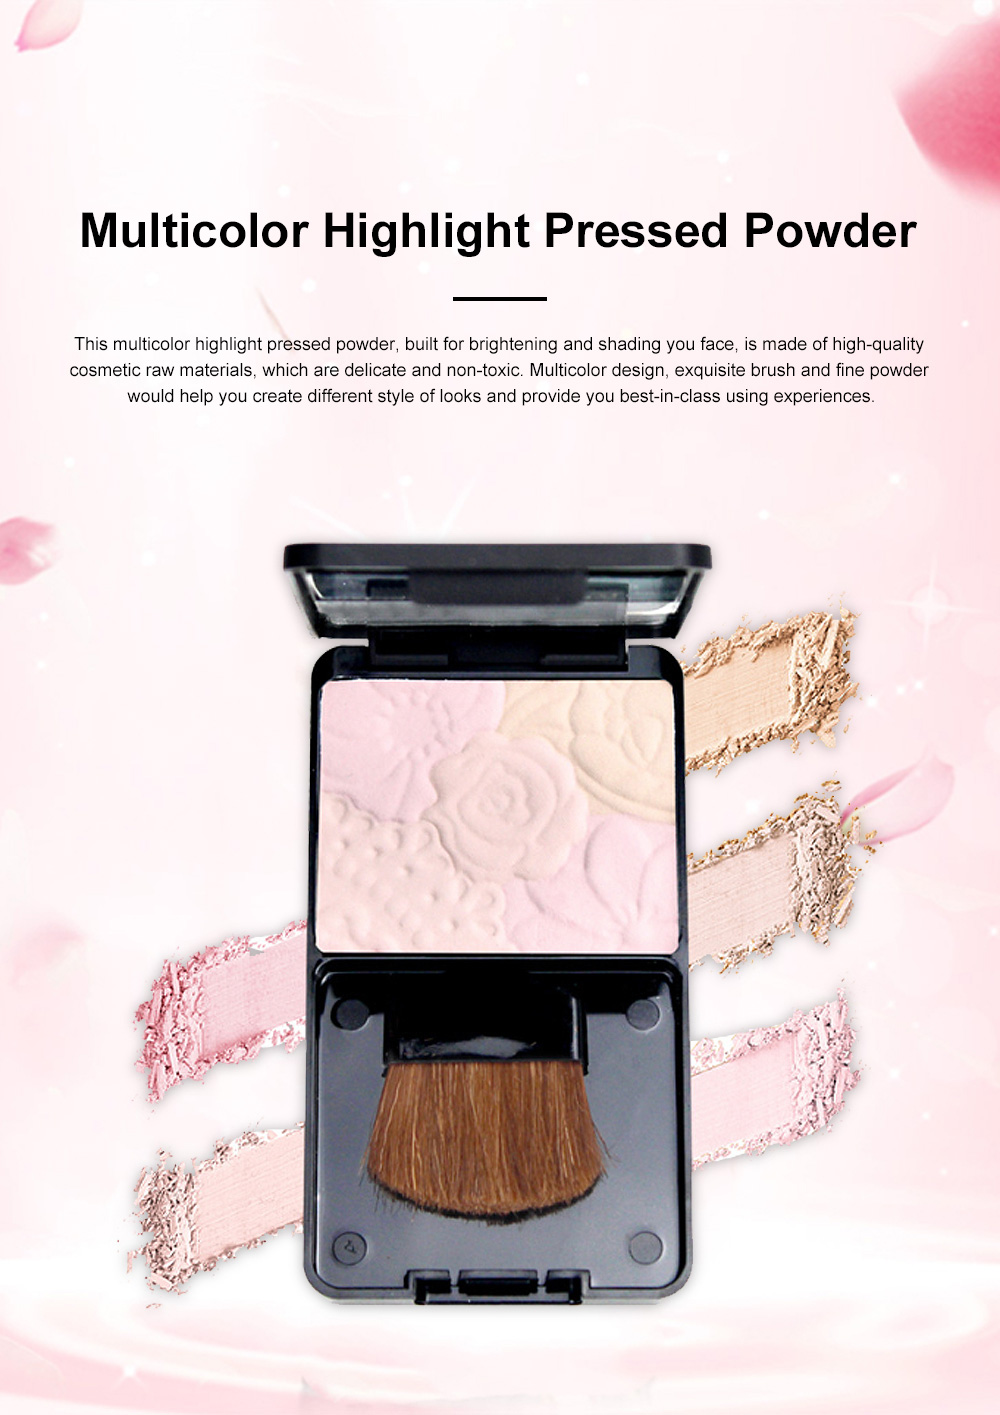 Fine Exquisite Flower Model Multicolor Highlight Pressed Powder Skin Brighten Shading Powder Cosmetic Accessories 0